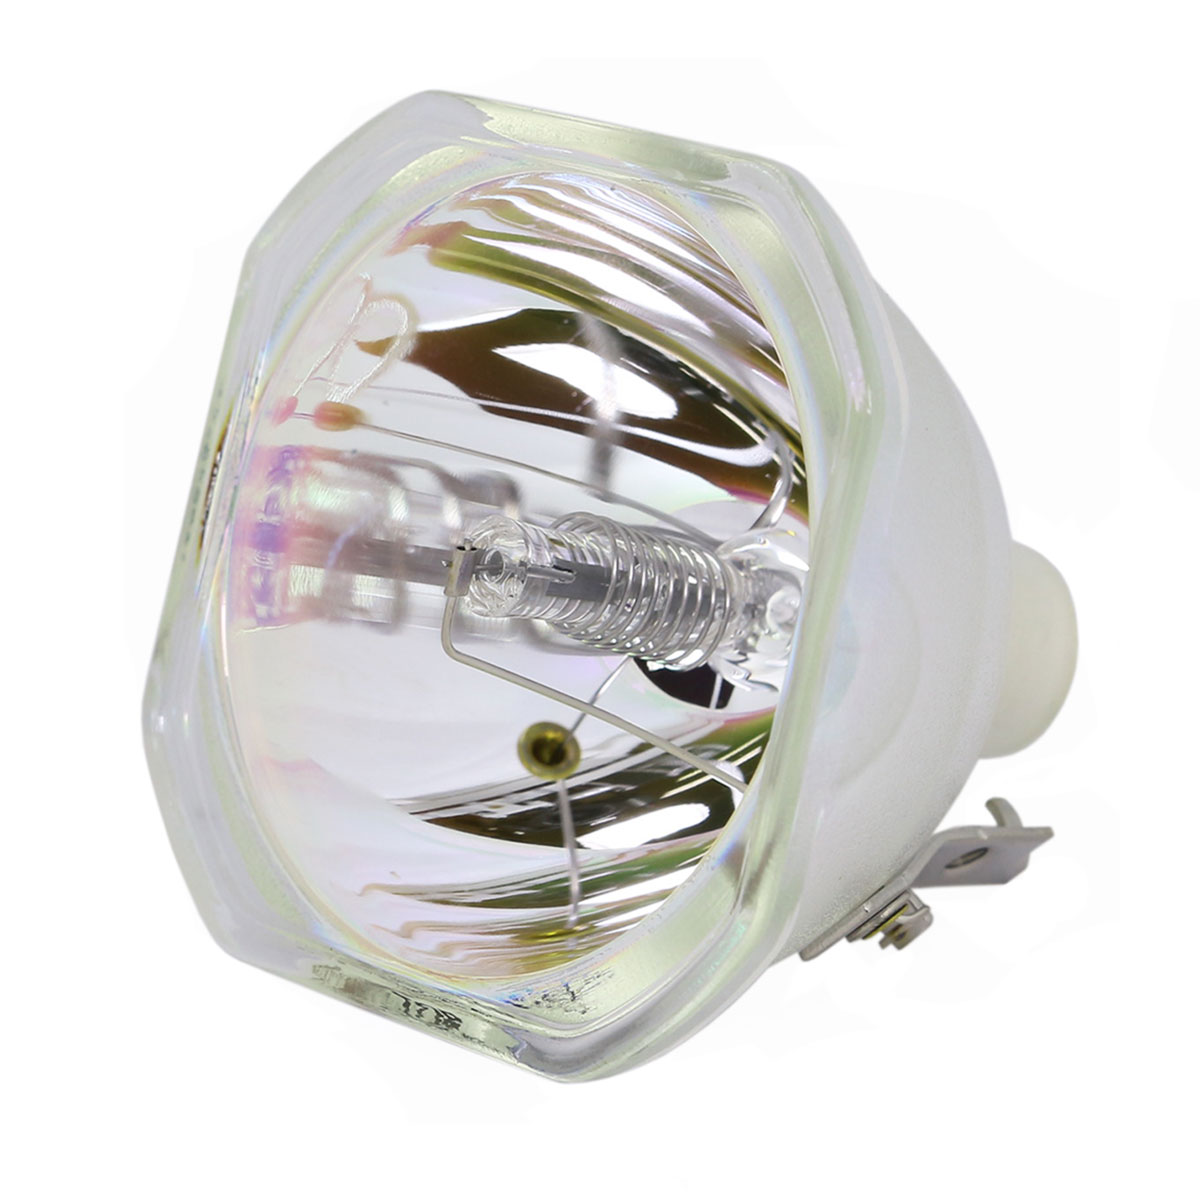 Osram Bare Lamp For Epson 535W Projector DLP LCD Bulb